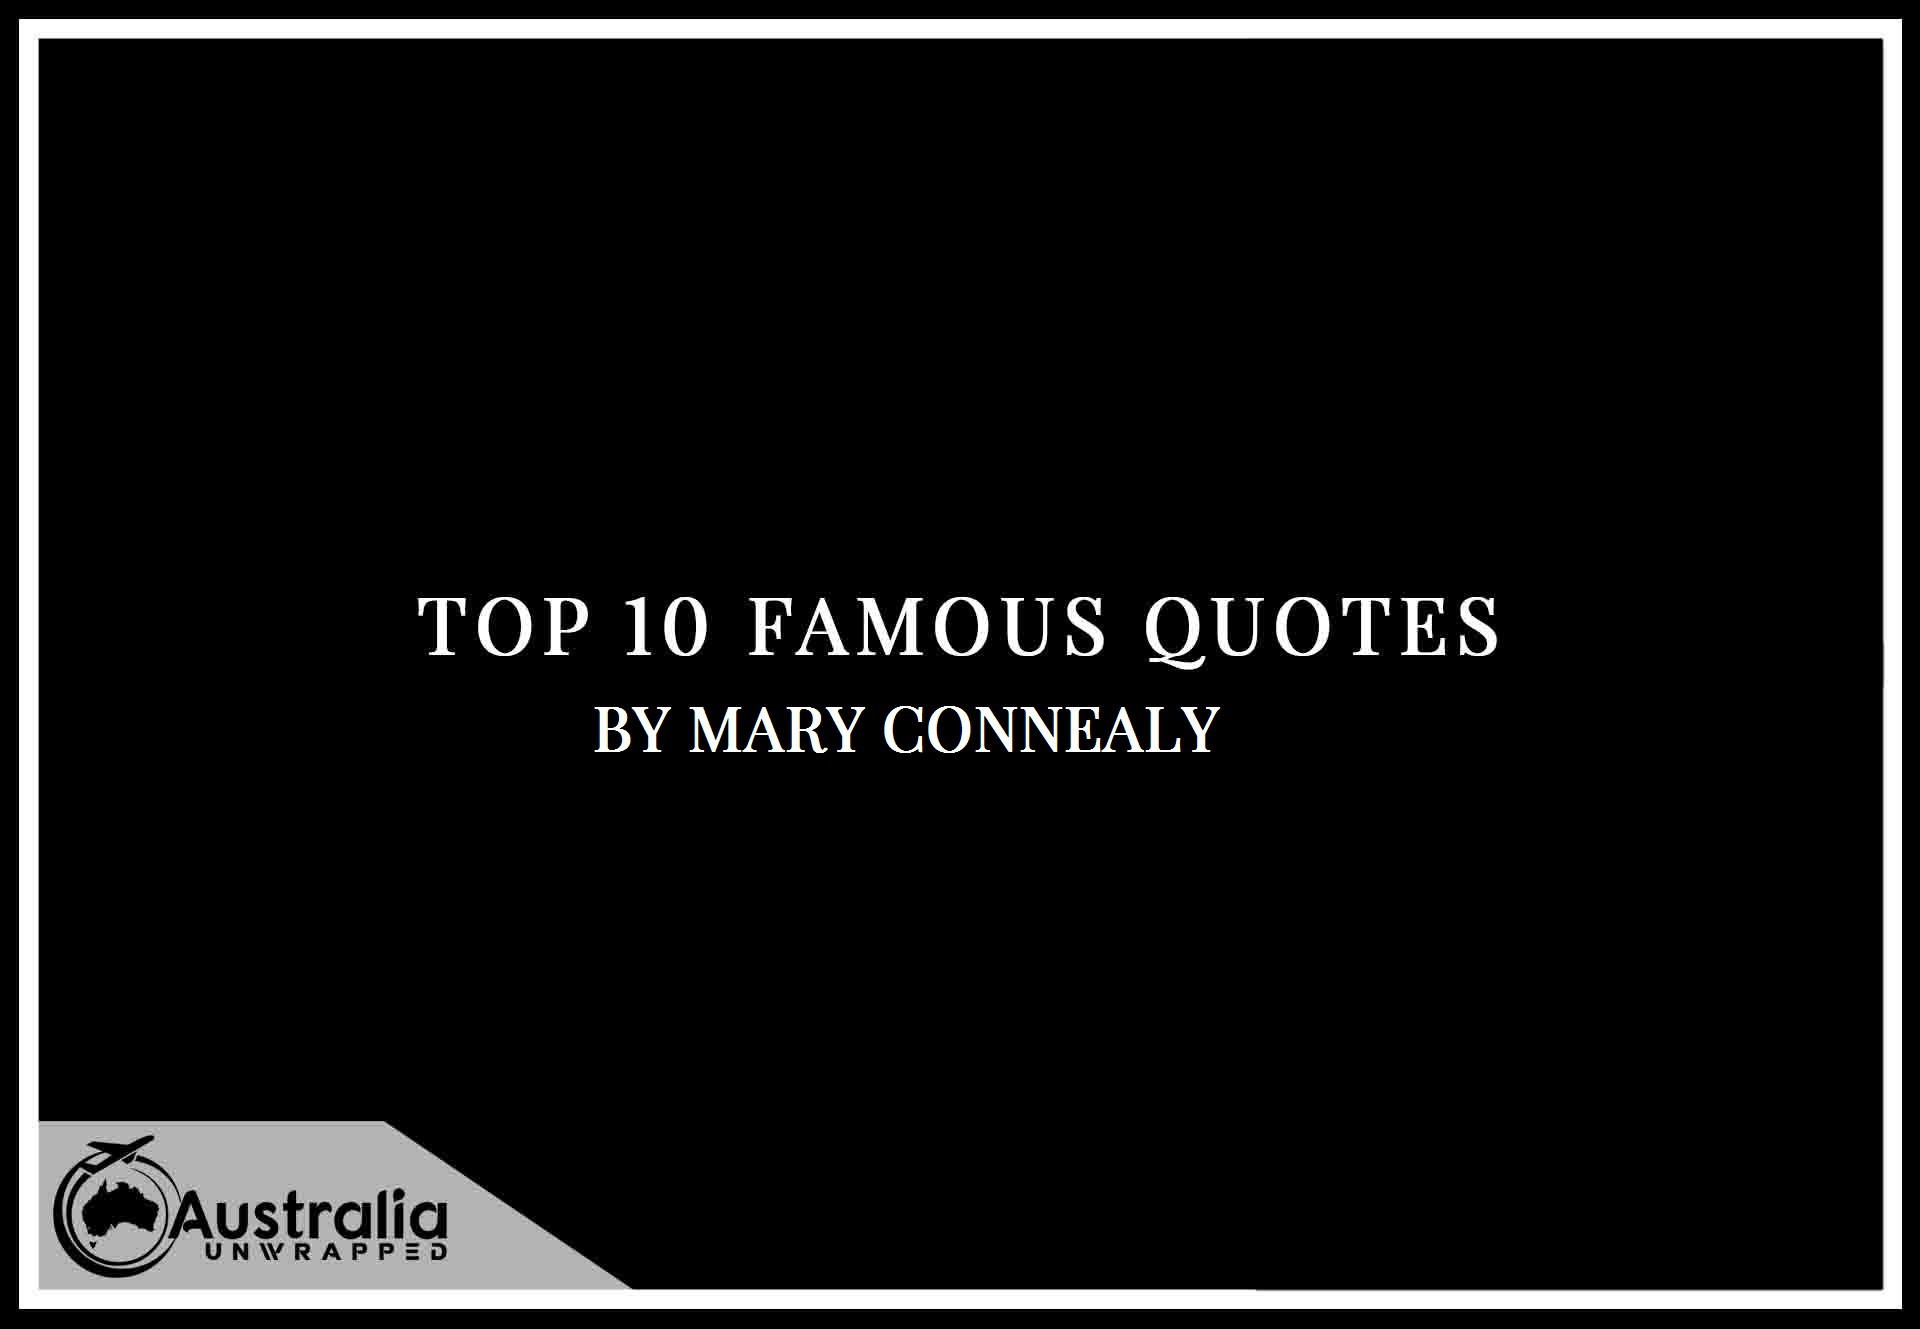 Mary Connealy's Top 10 Popular and Famous Quotes